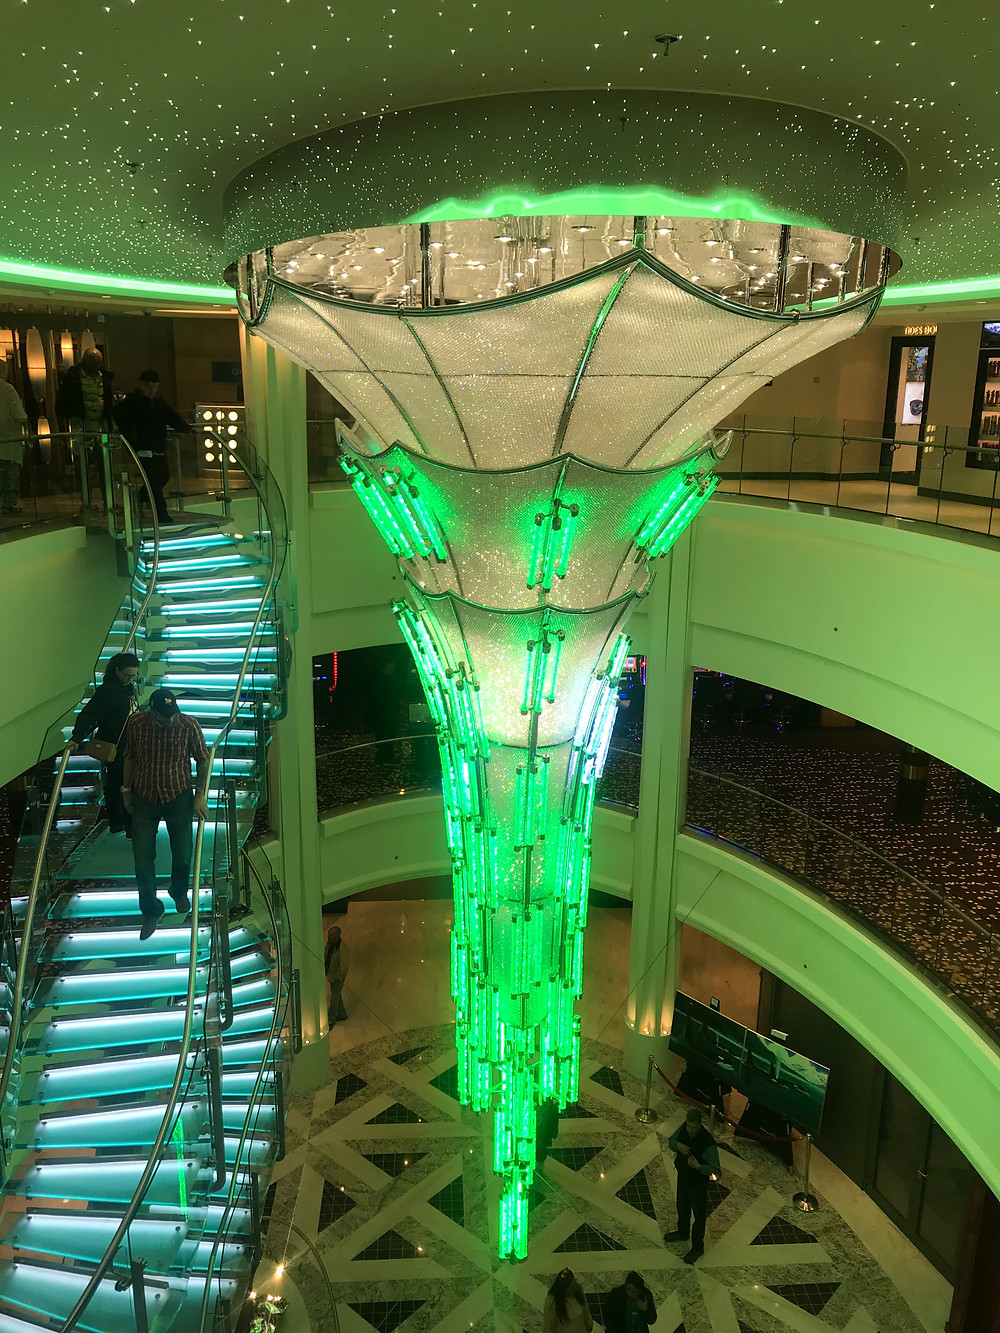 Giant chandelier in the ship